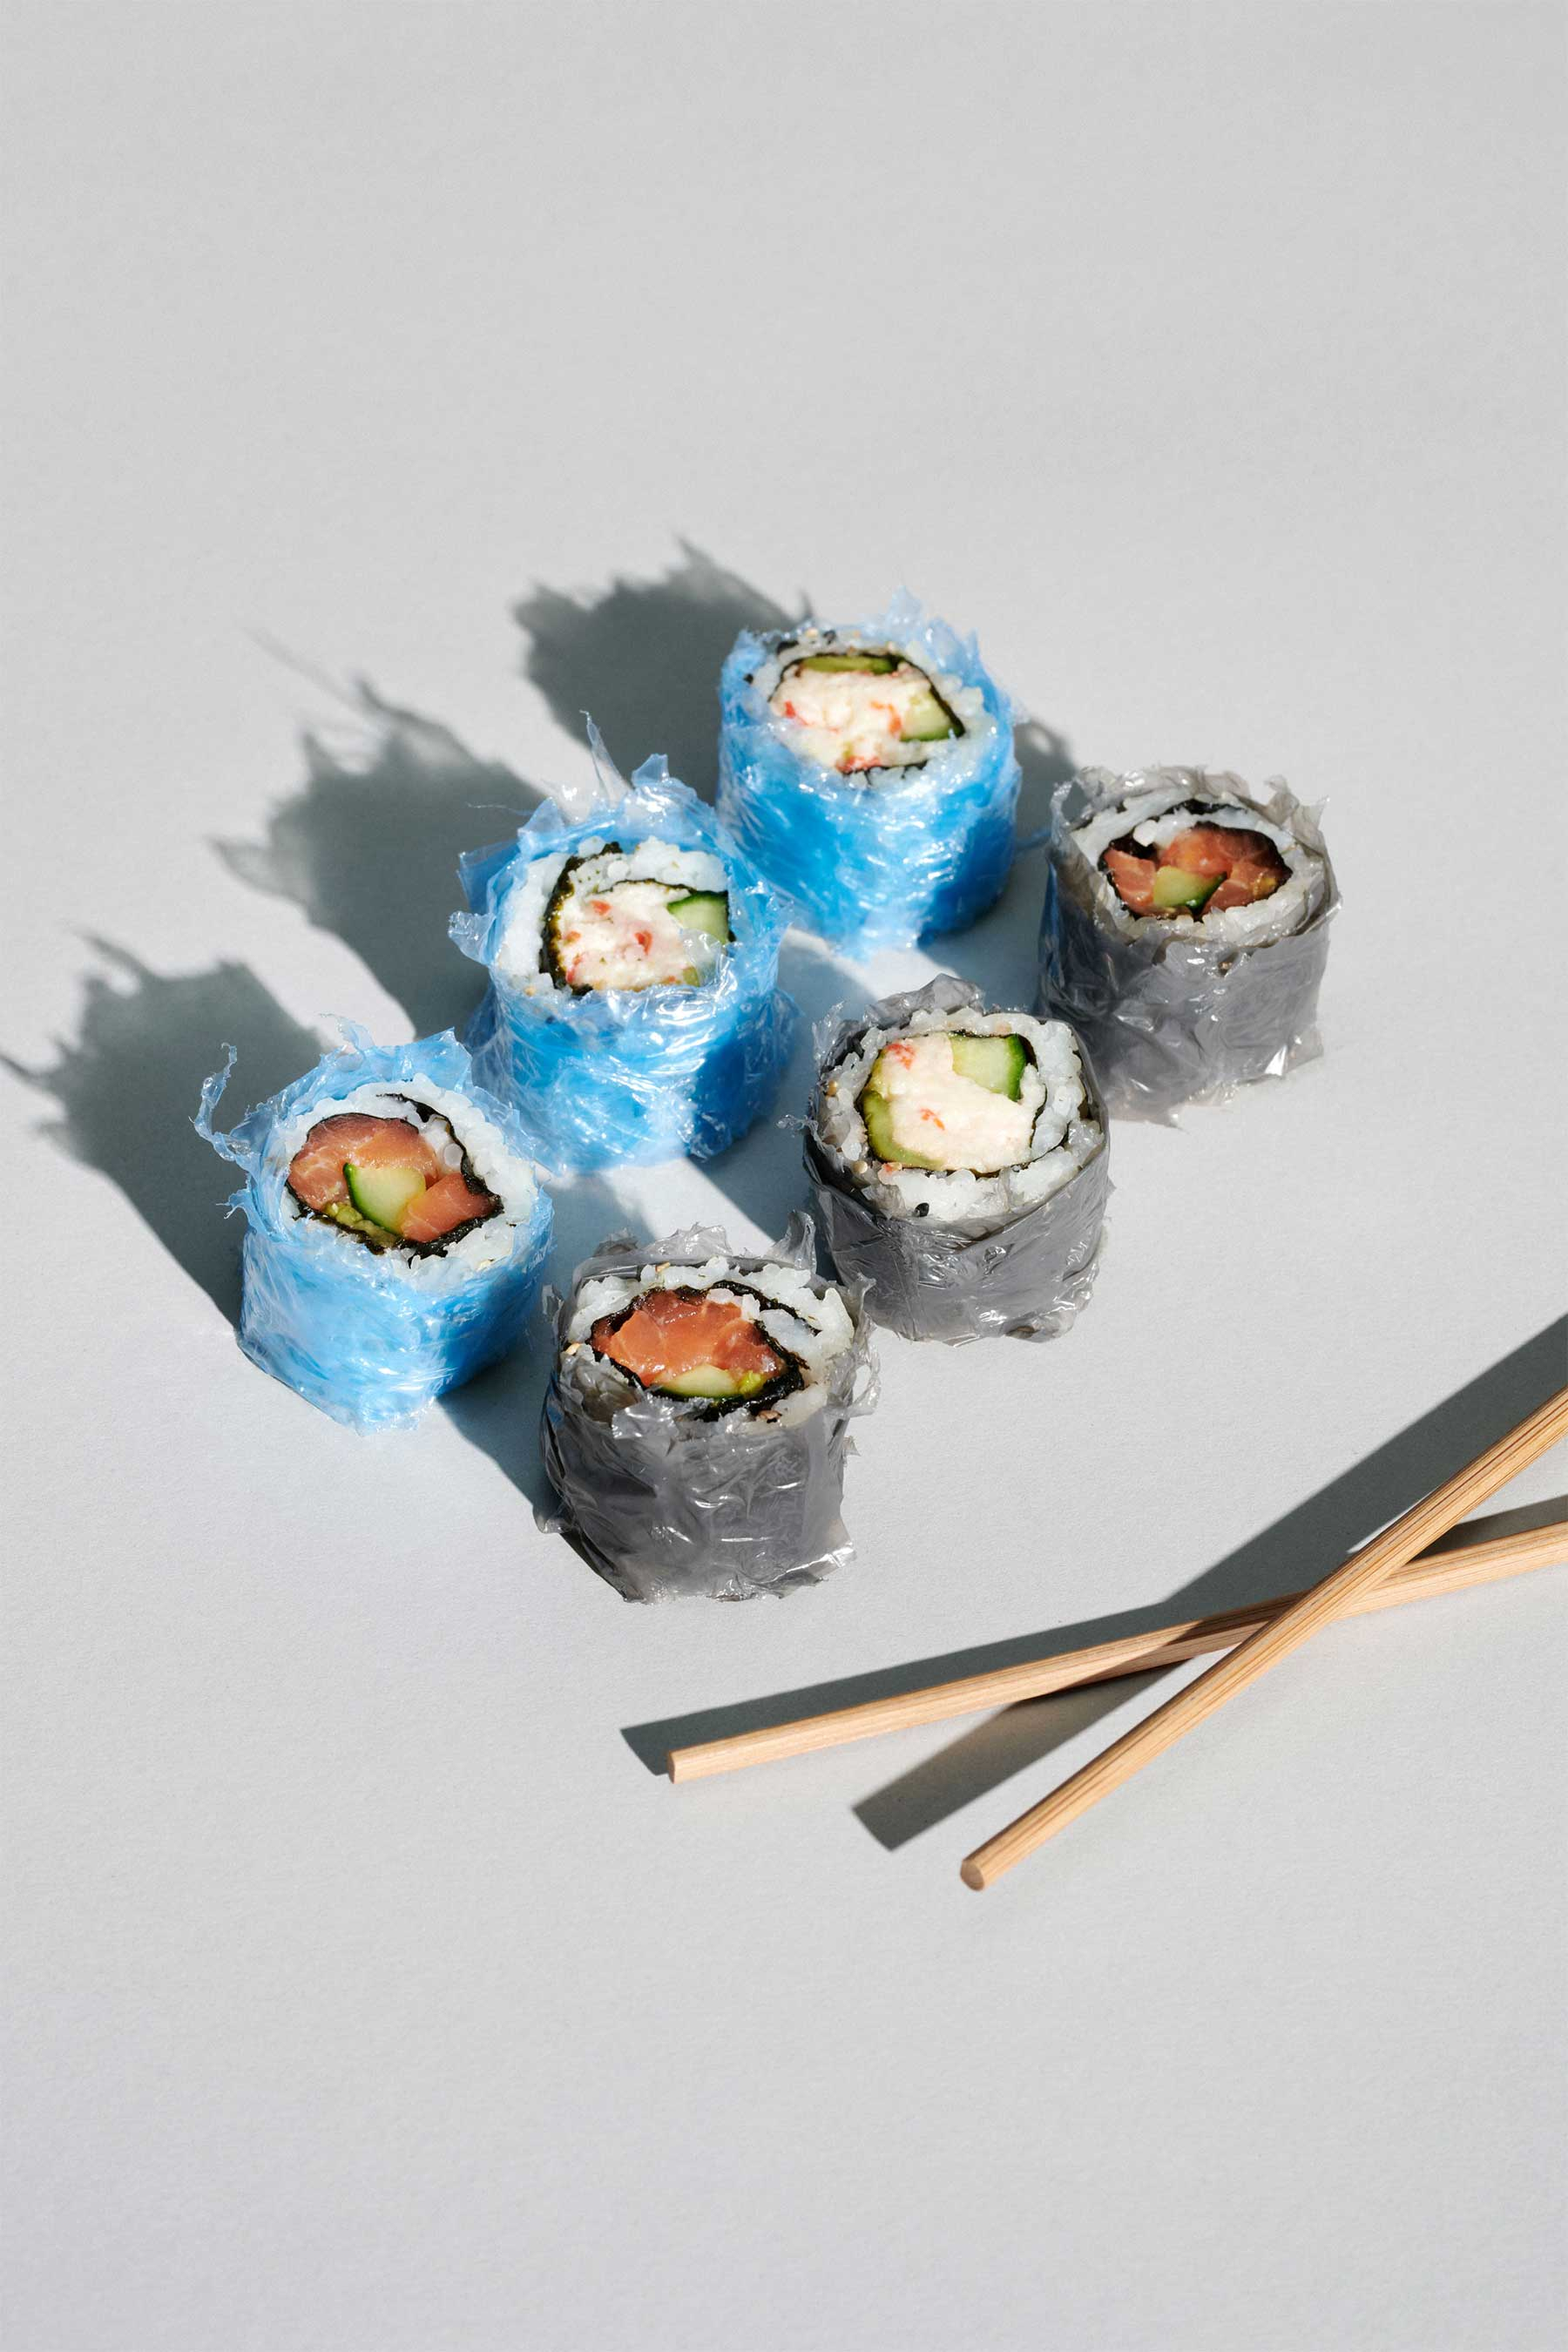 Sushi im Plastik-Mantel microplastic-photos-series_01